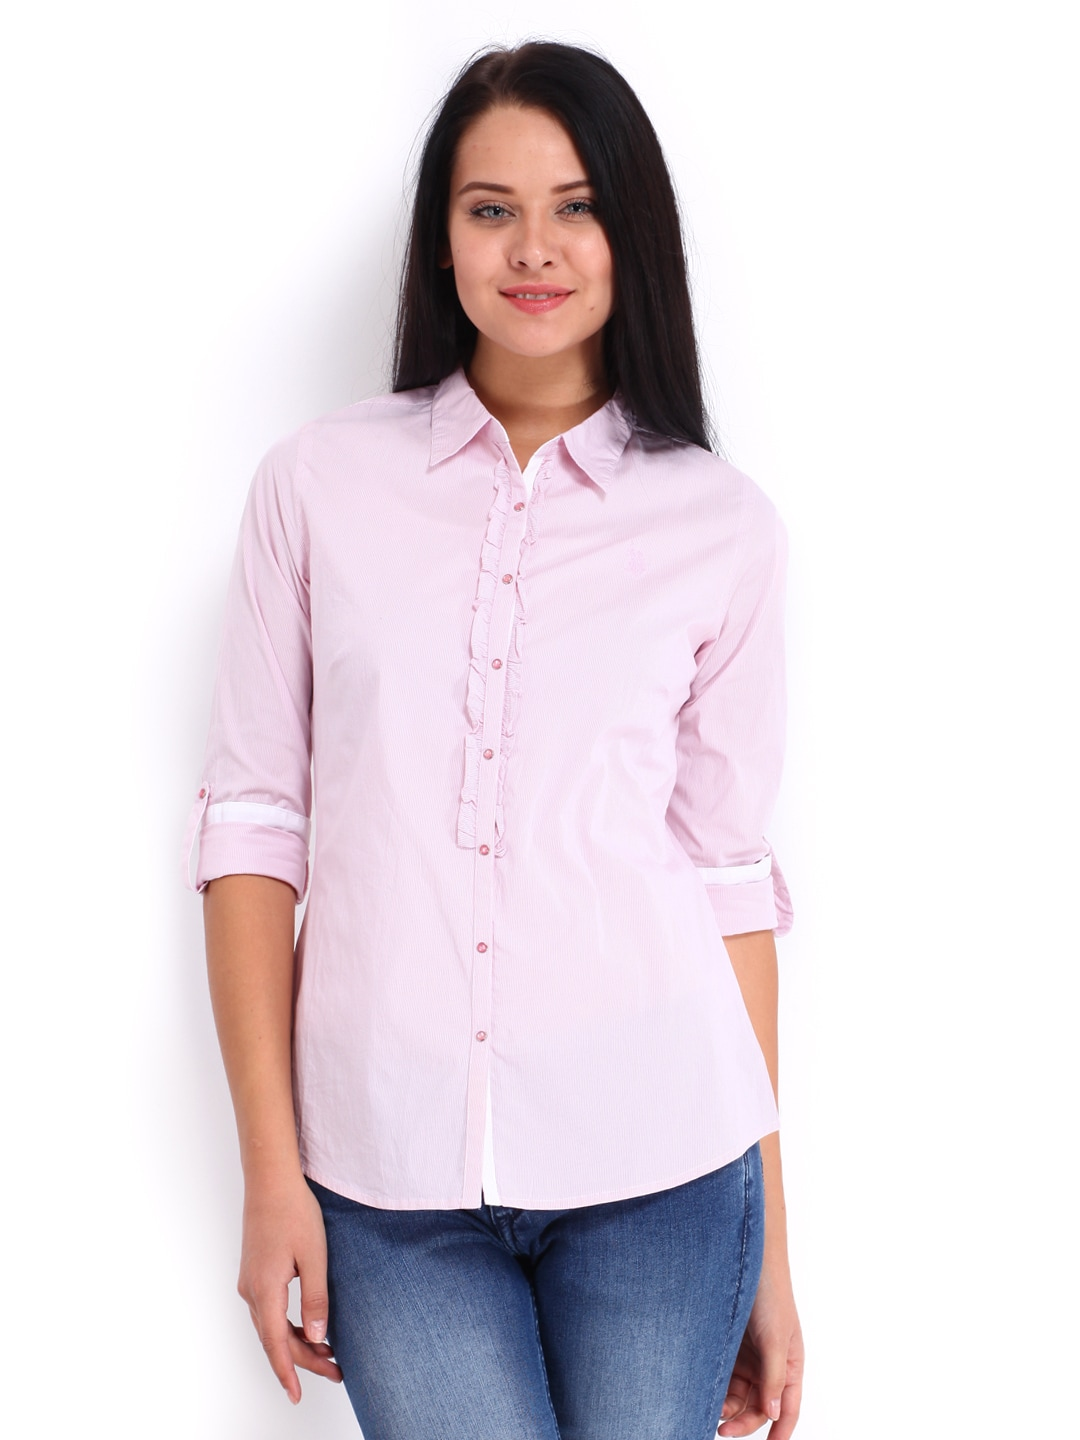 U.S. Polo Assn. Women Pink & White Striped Shirt